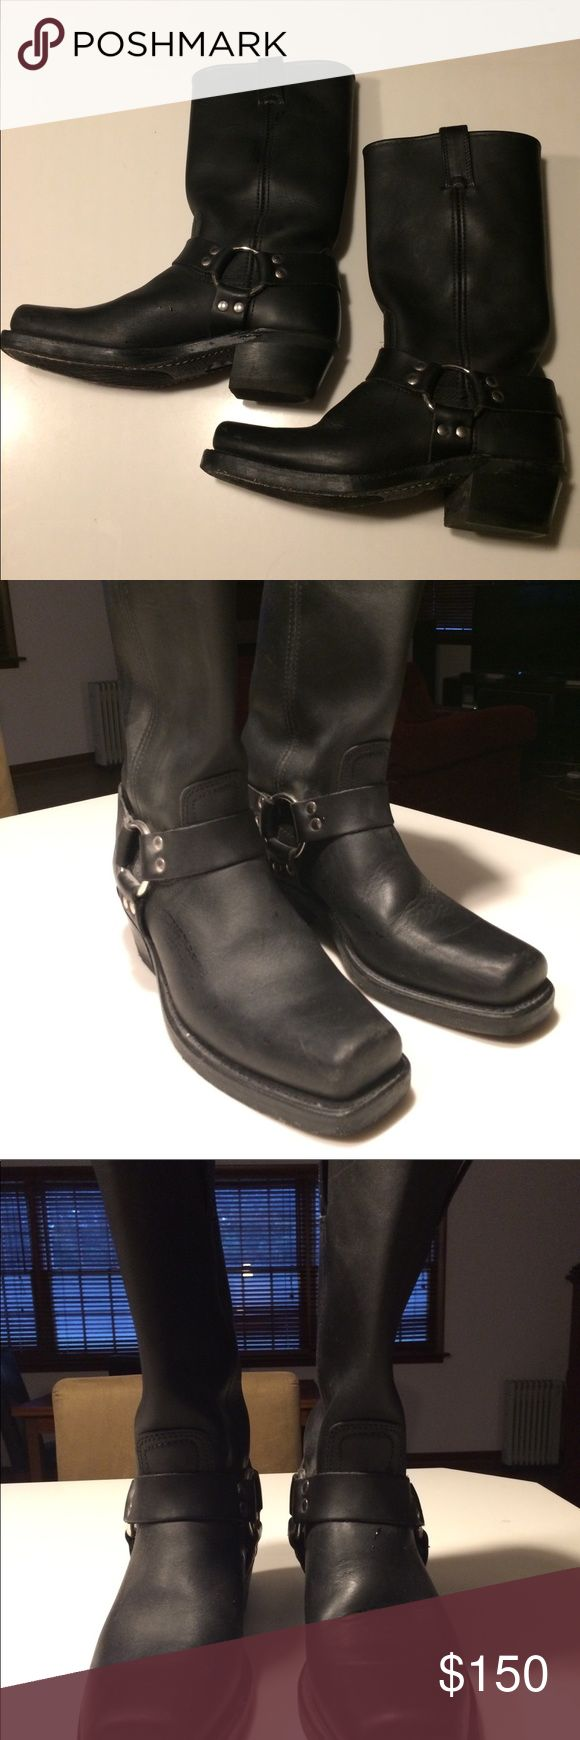 Frye Harness boots Frye Harness boots in black.  Worn twice.  A few barely noticeable scratches on toes, otherwise excellent condition.  Please see photos and ask questions if needed! Frye Shoes